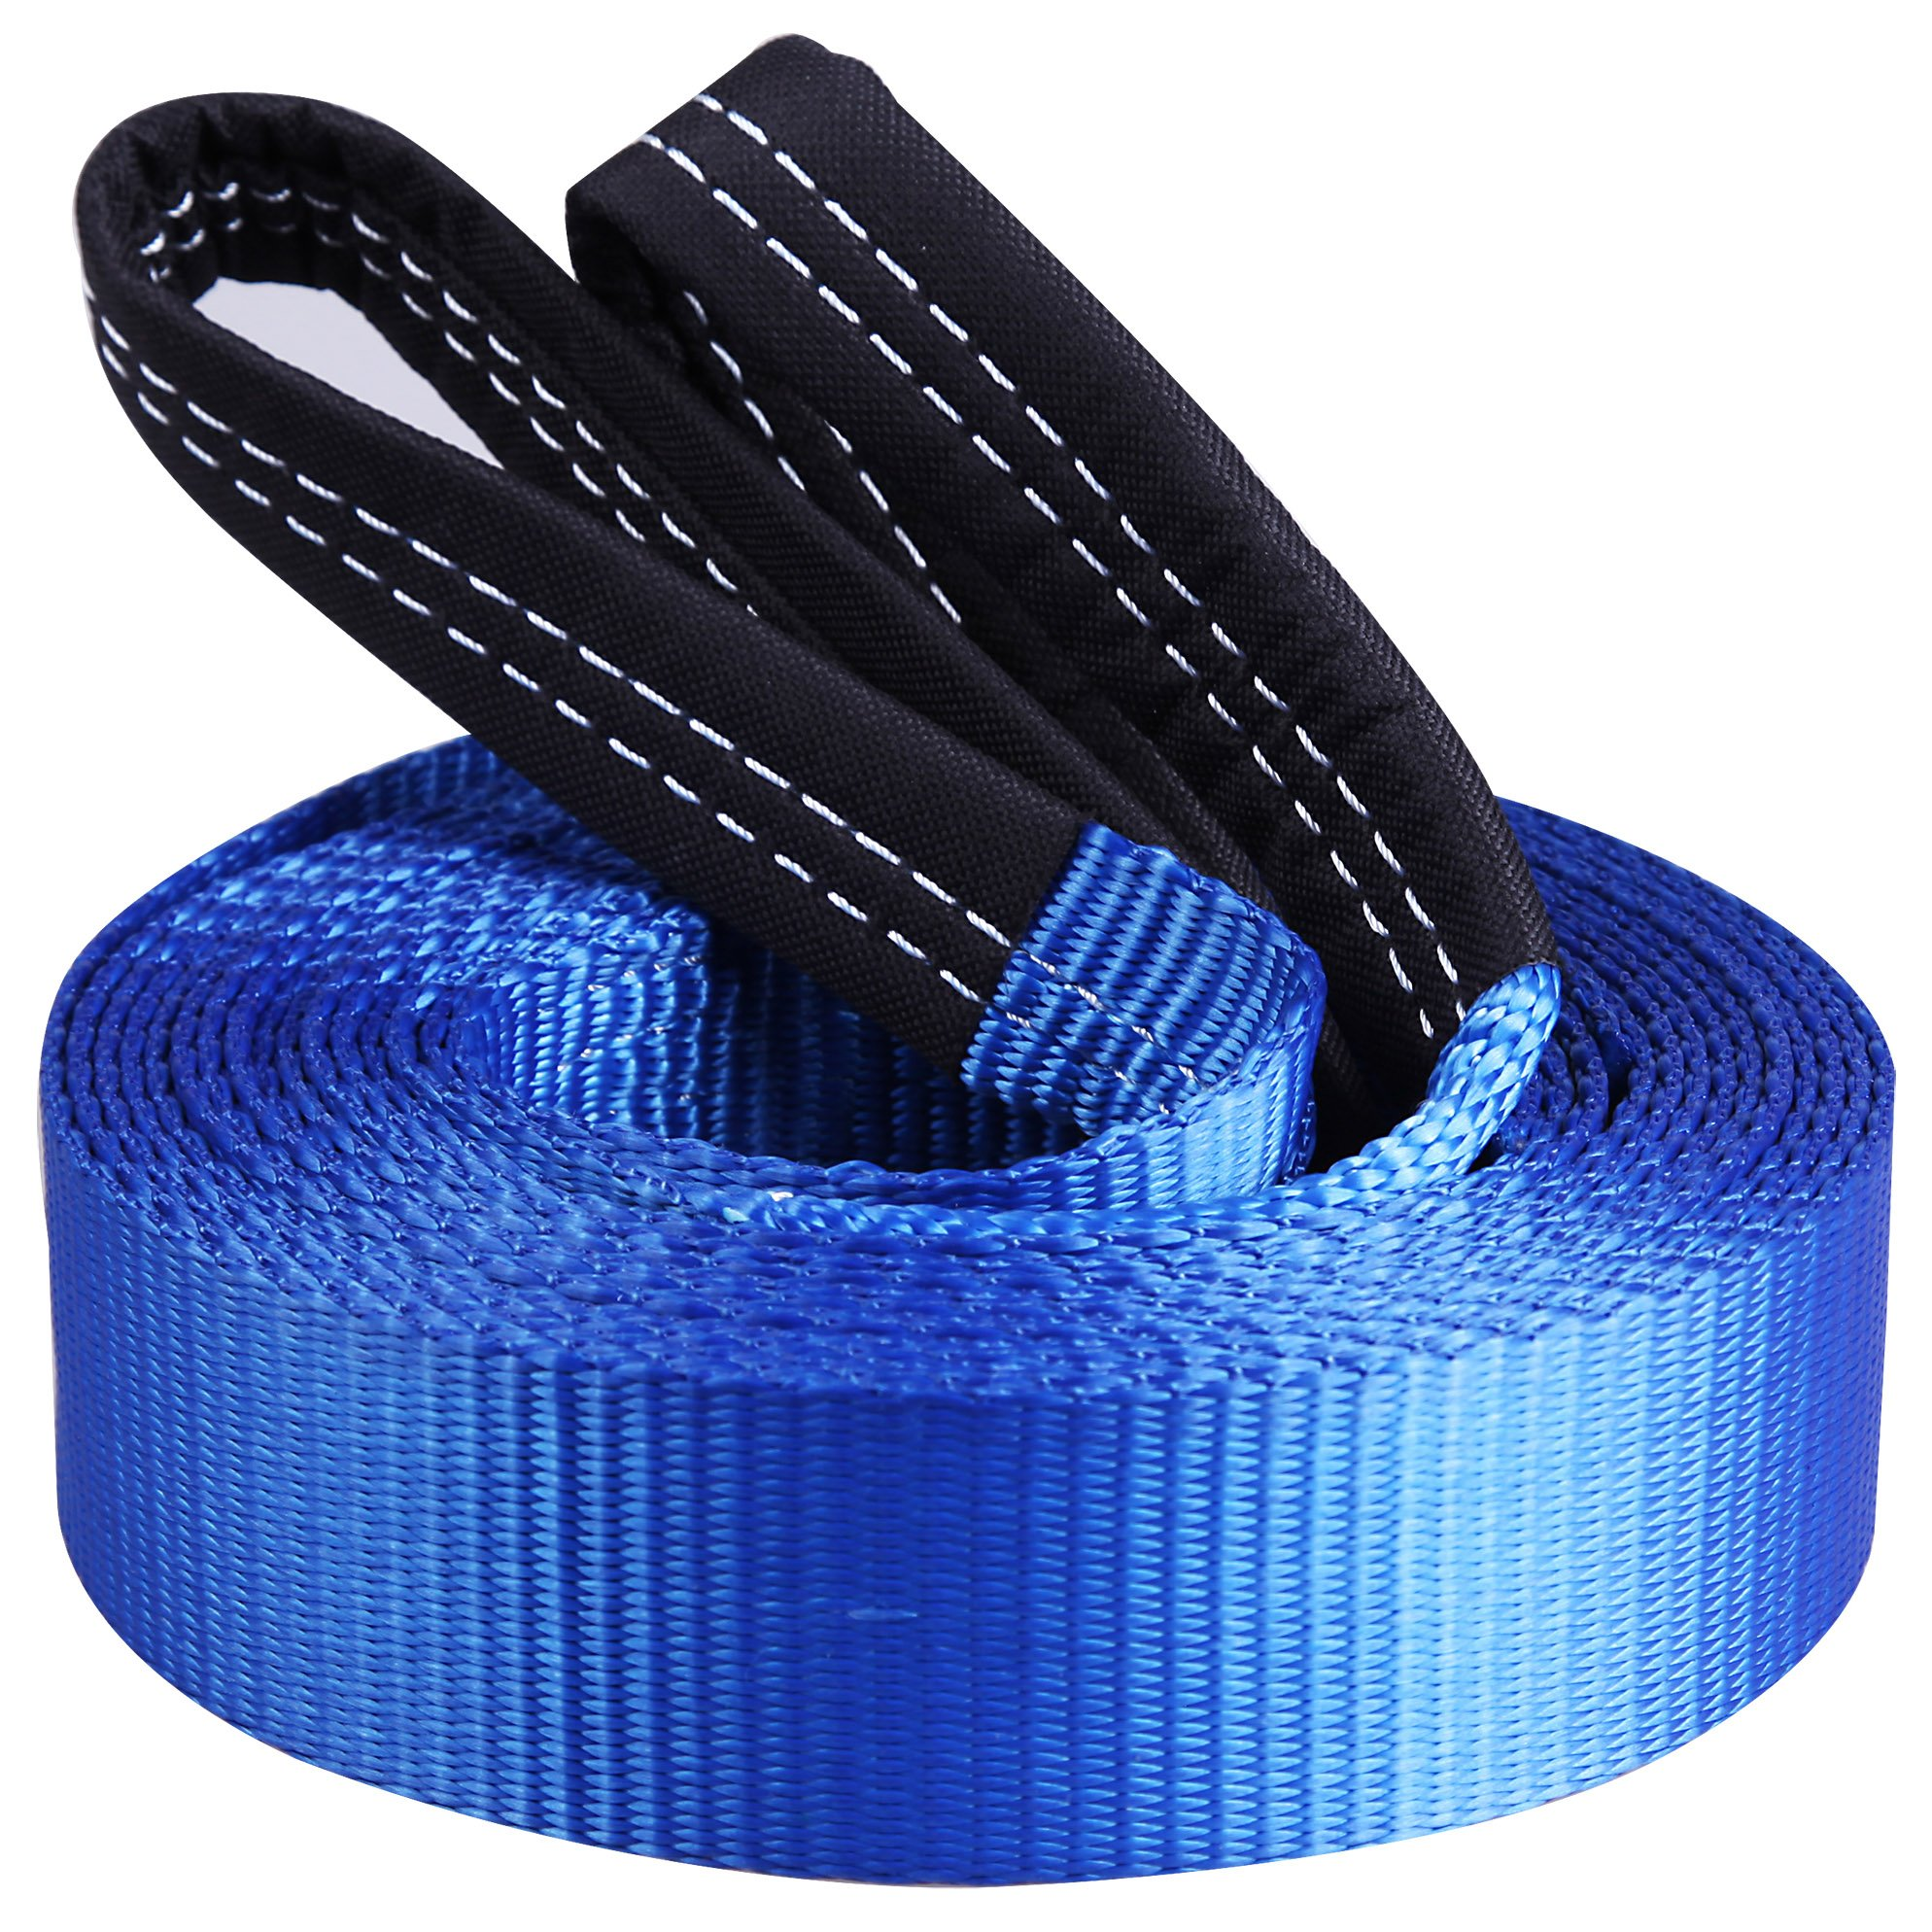 CARTMAN Heavy Duty Tow Belt 2'' x 20' 10,000Lbs, Tow Strap with Reinforced Loops